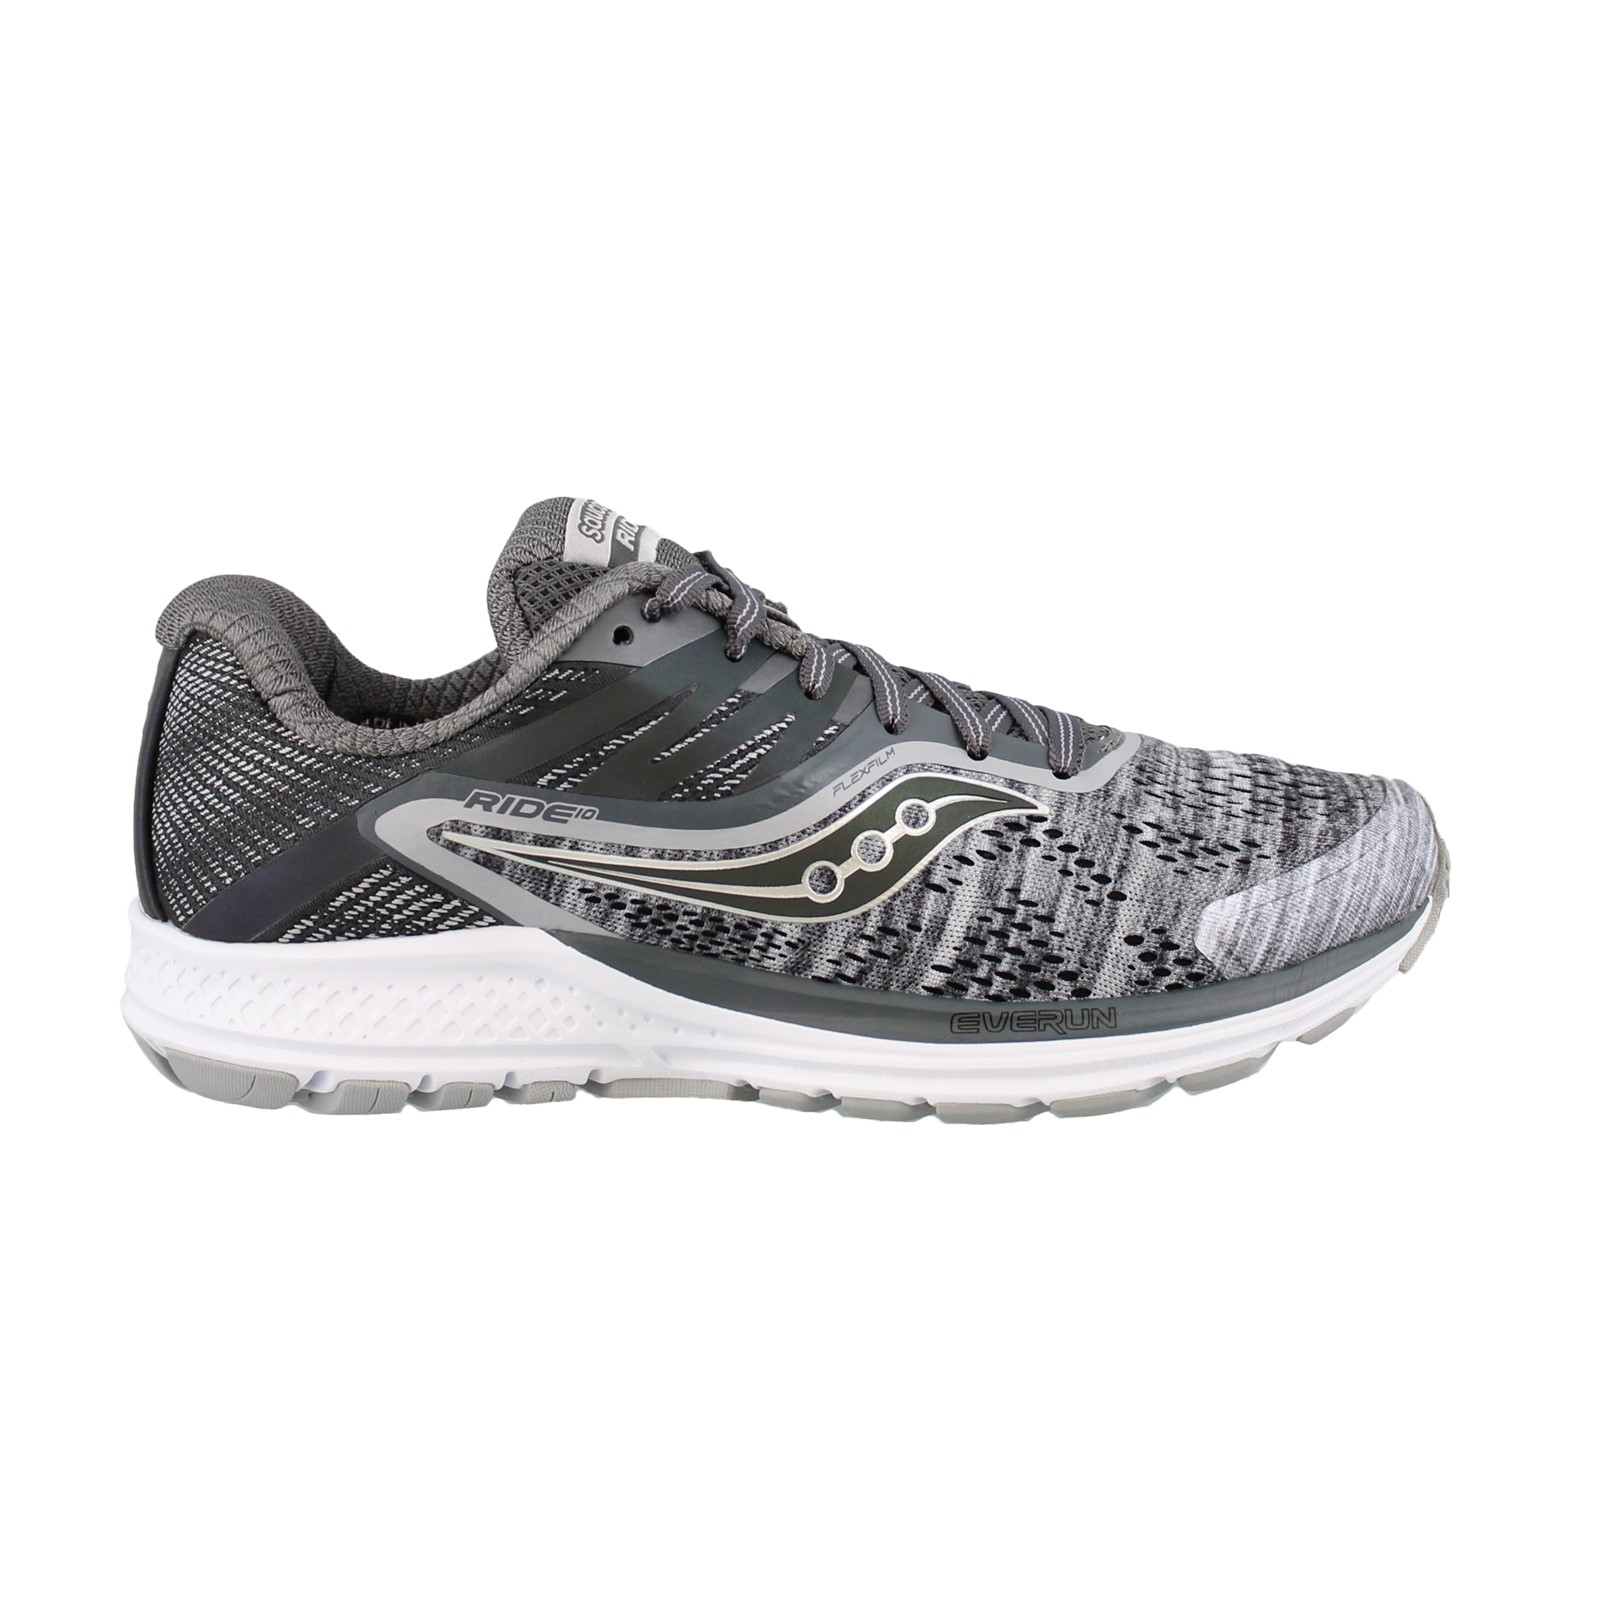 Women's SAUCONY, RIDE 10 RUNNING SNEAKERS